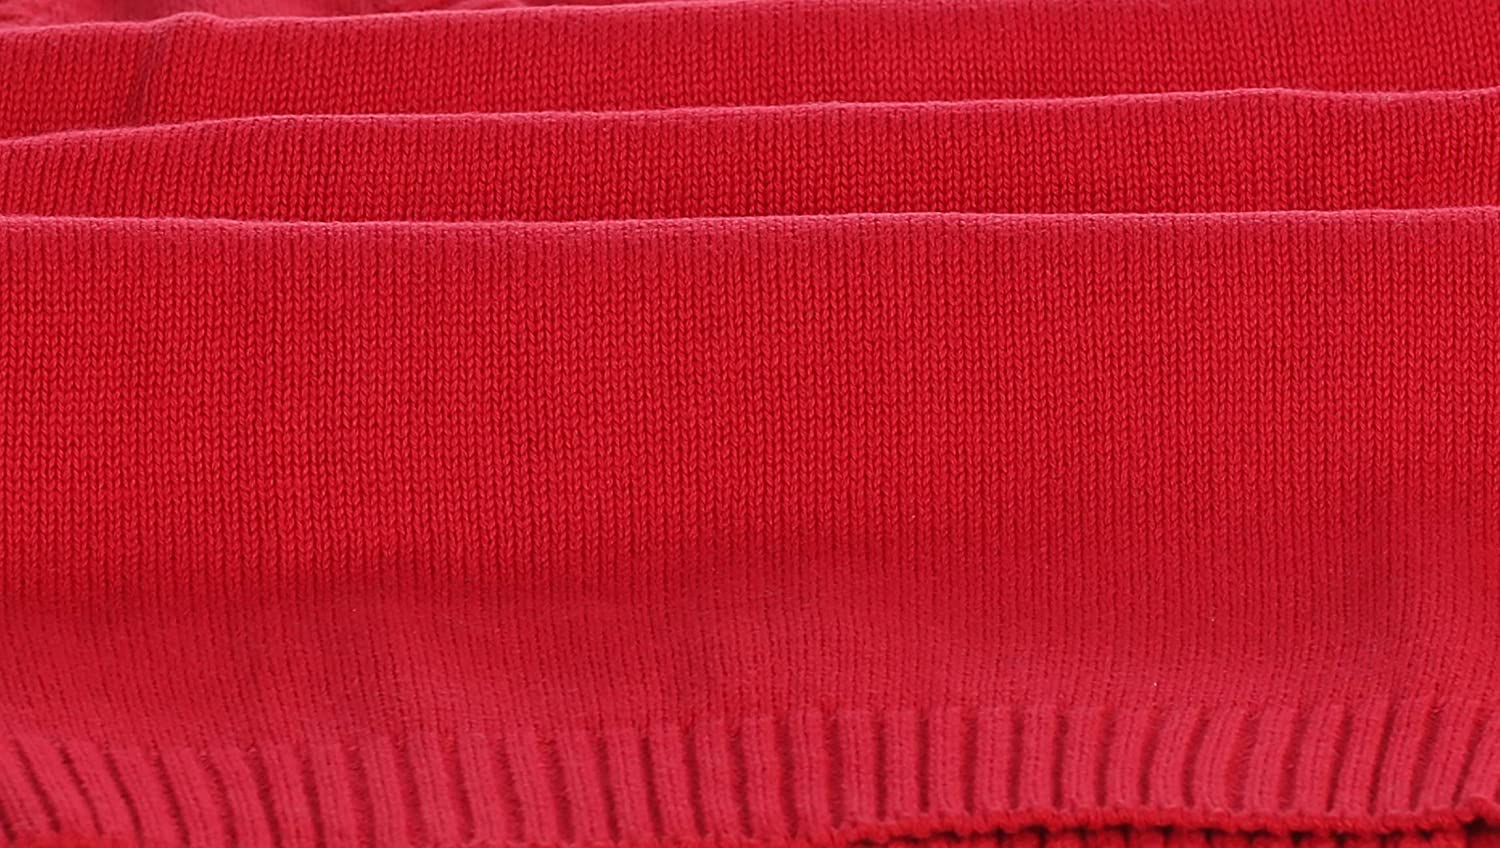 Red Size 12 Gioberti Boys V-Neck Knitted Pullover Sweater Vest